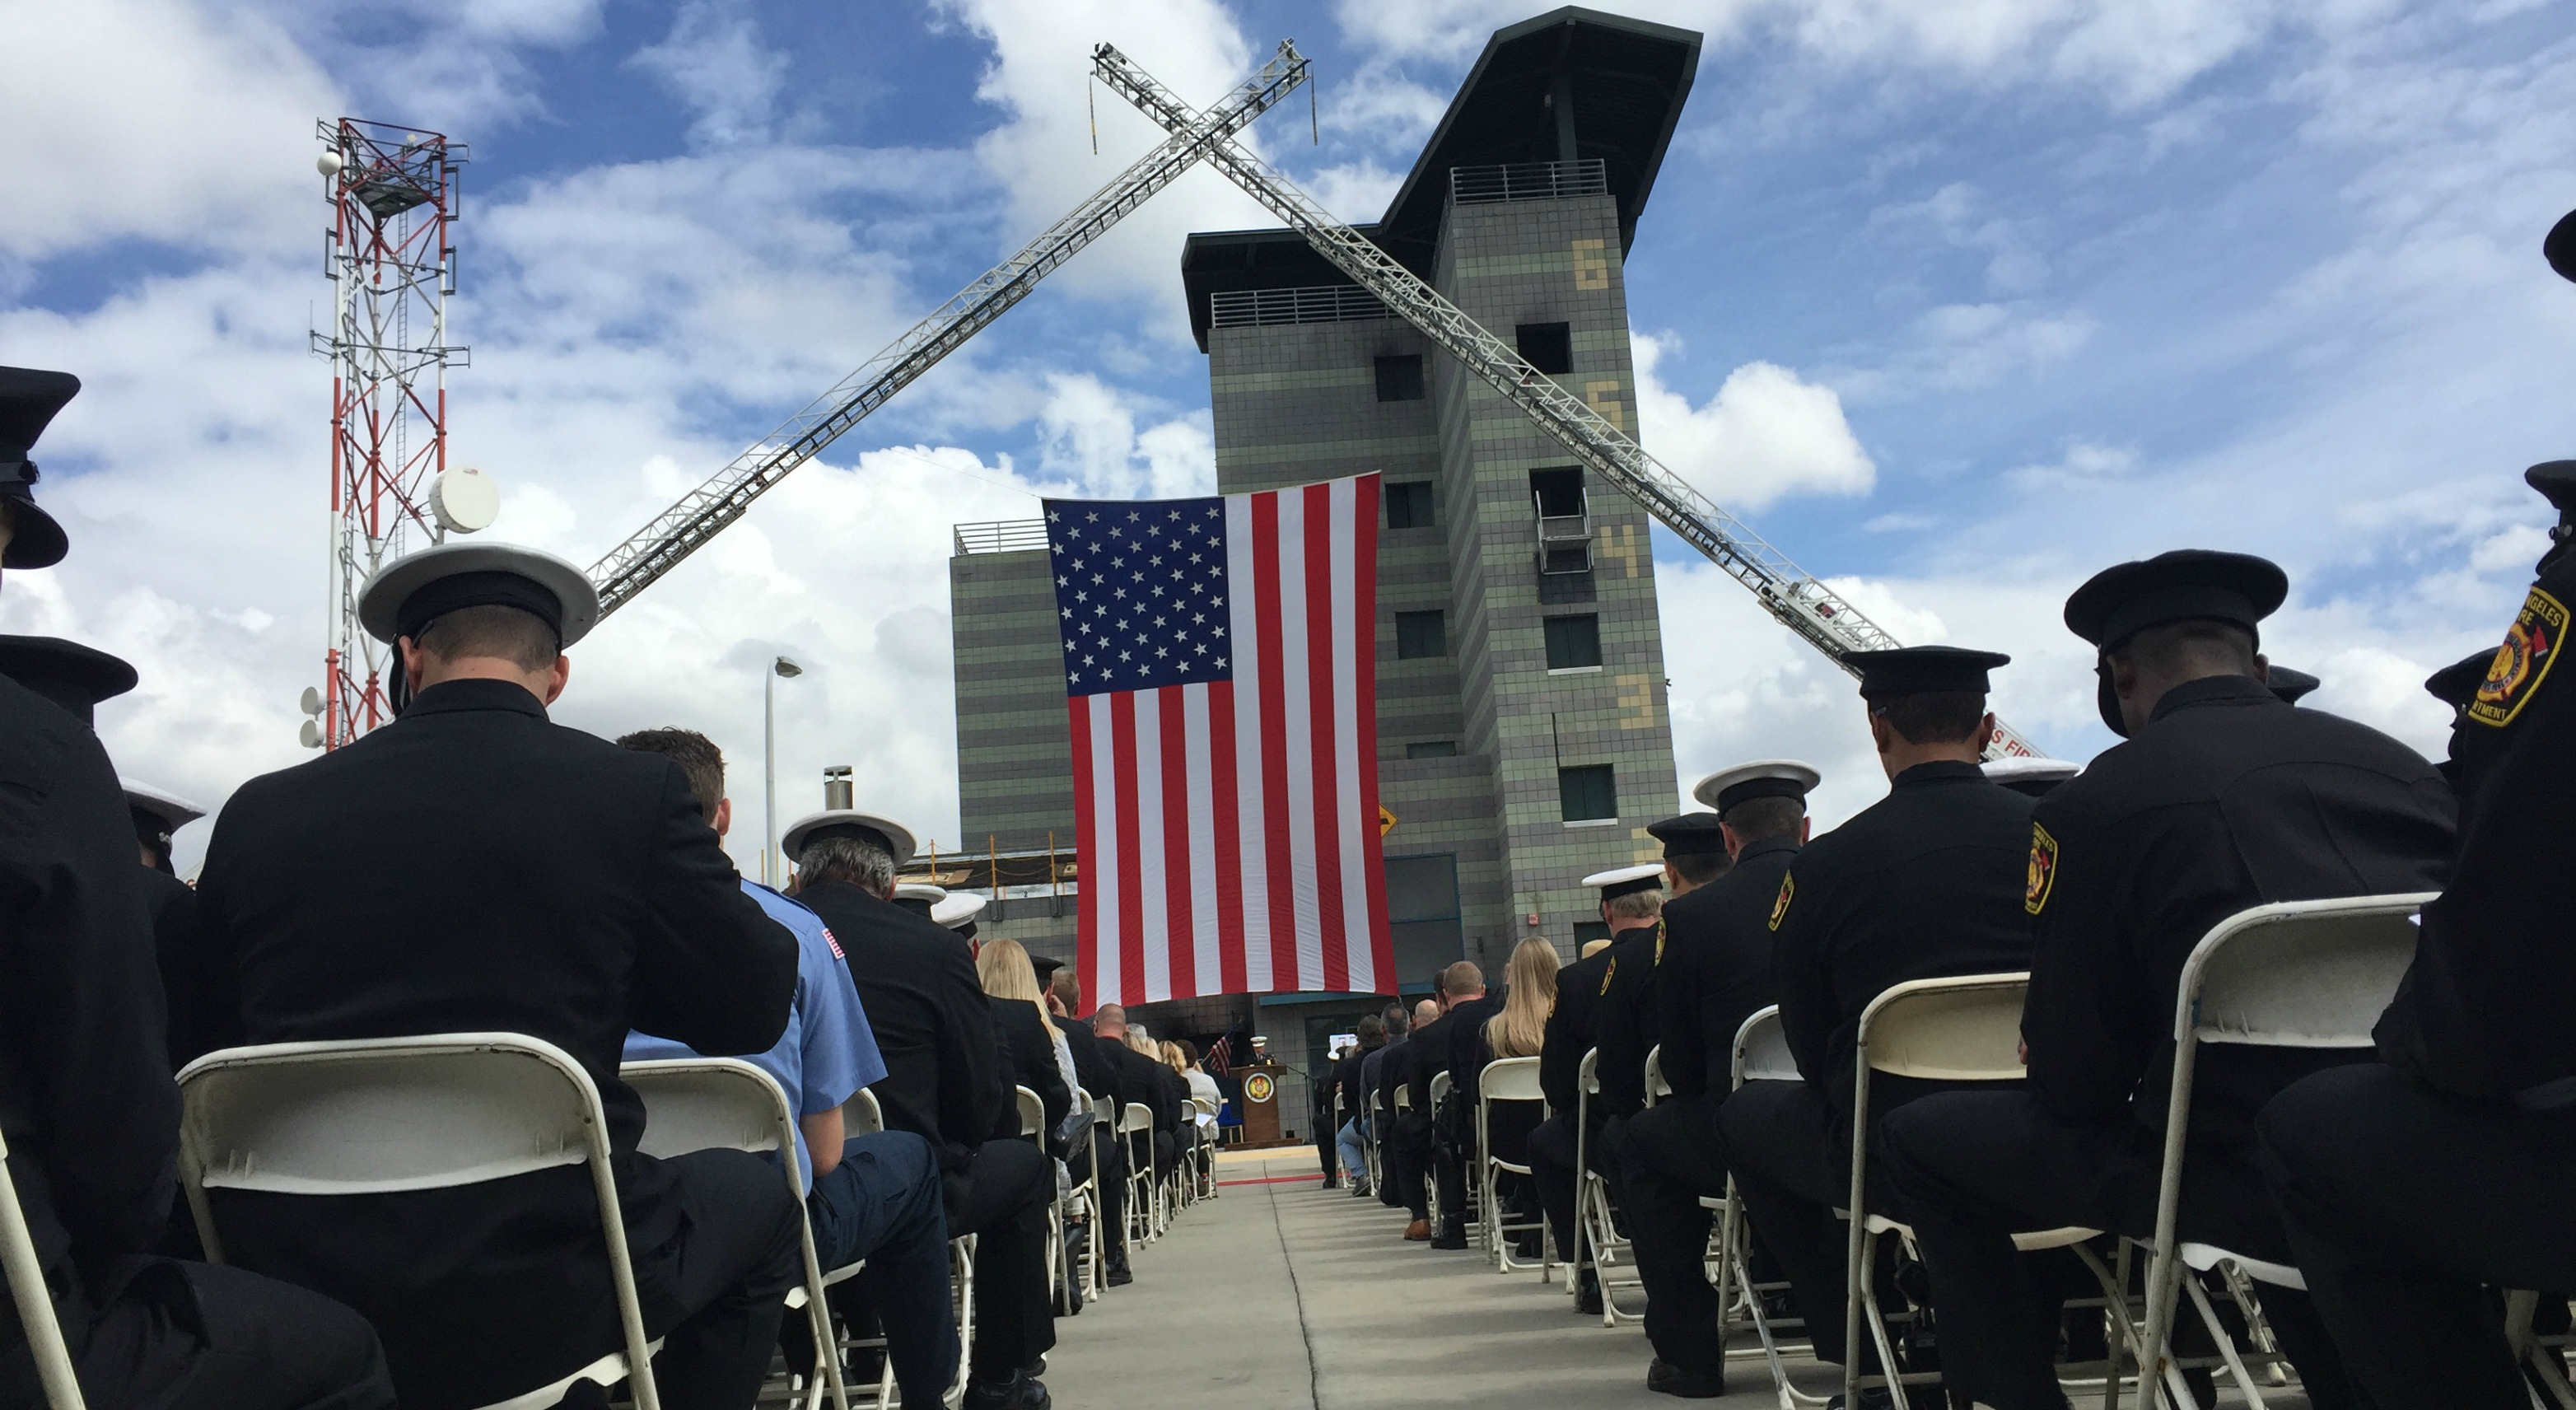 First responders from throughout Southern California pay their final respects Friday to LAFD Capt. Sean Stilson, 44, who passed away April 22